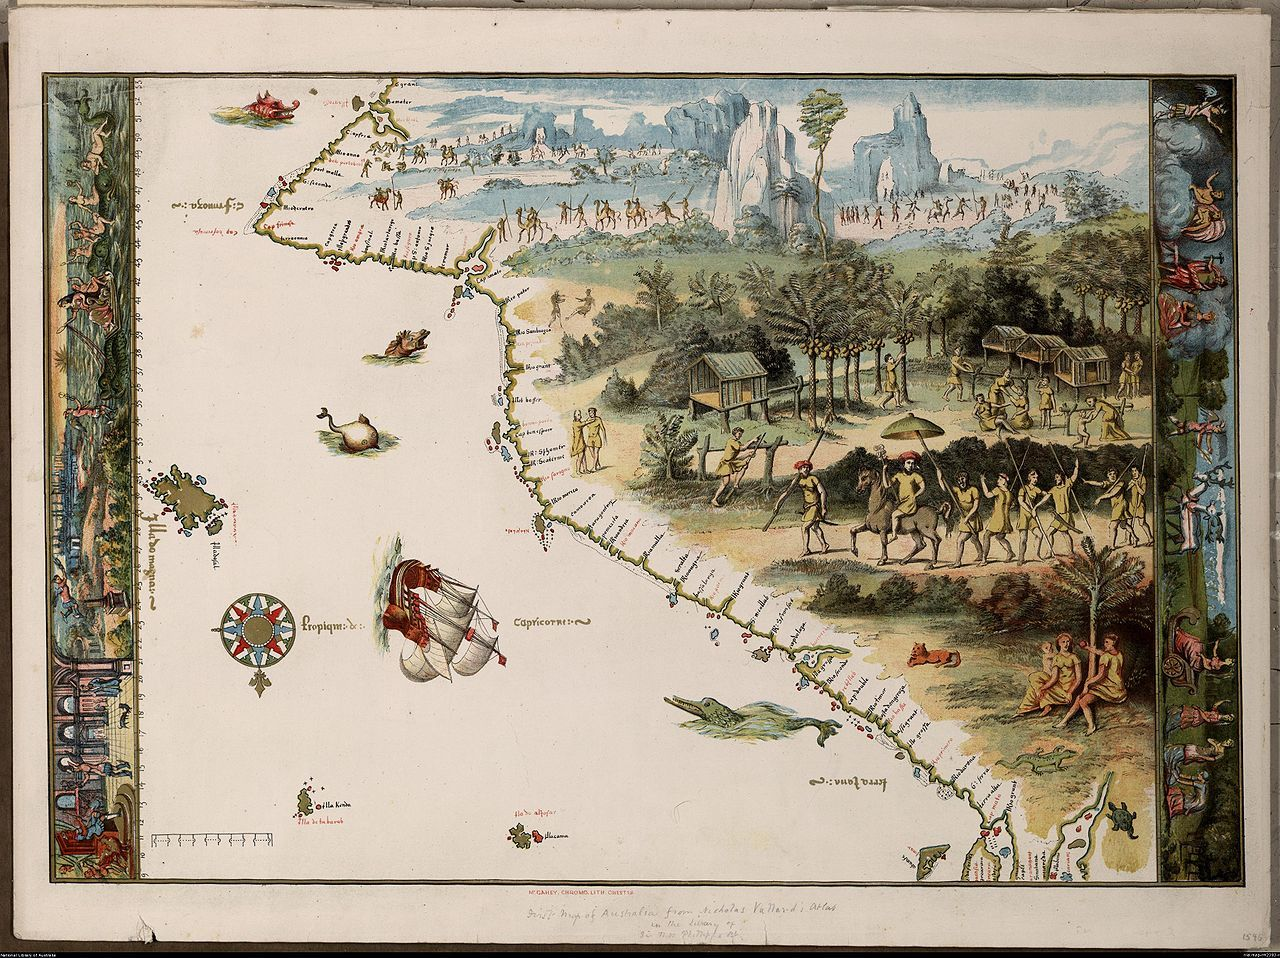 The map java la grande an imagined continent that invited close the map java la grande an imagined continent that invited close inspection from viewers gives new meaning to the map being the territory gumiabroncs Images